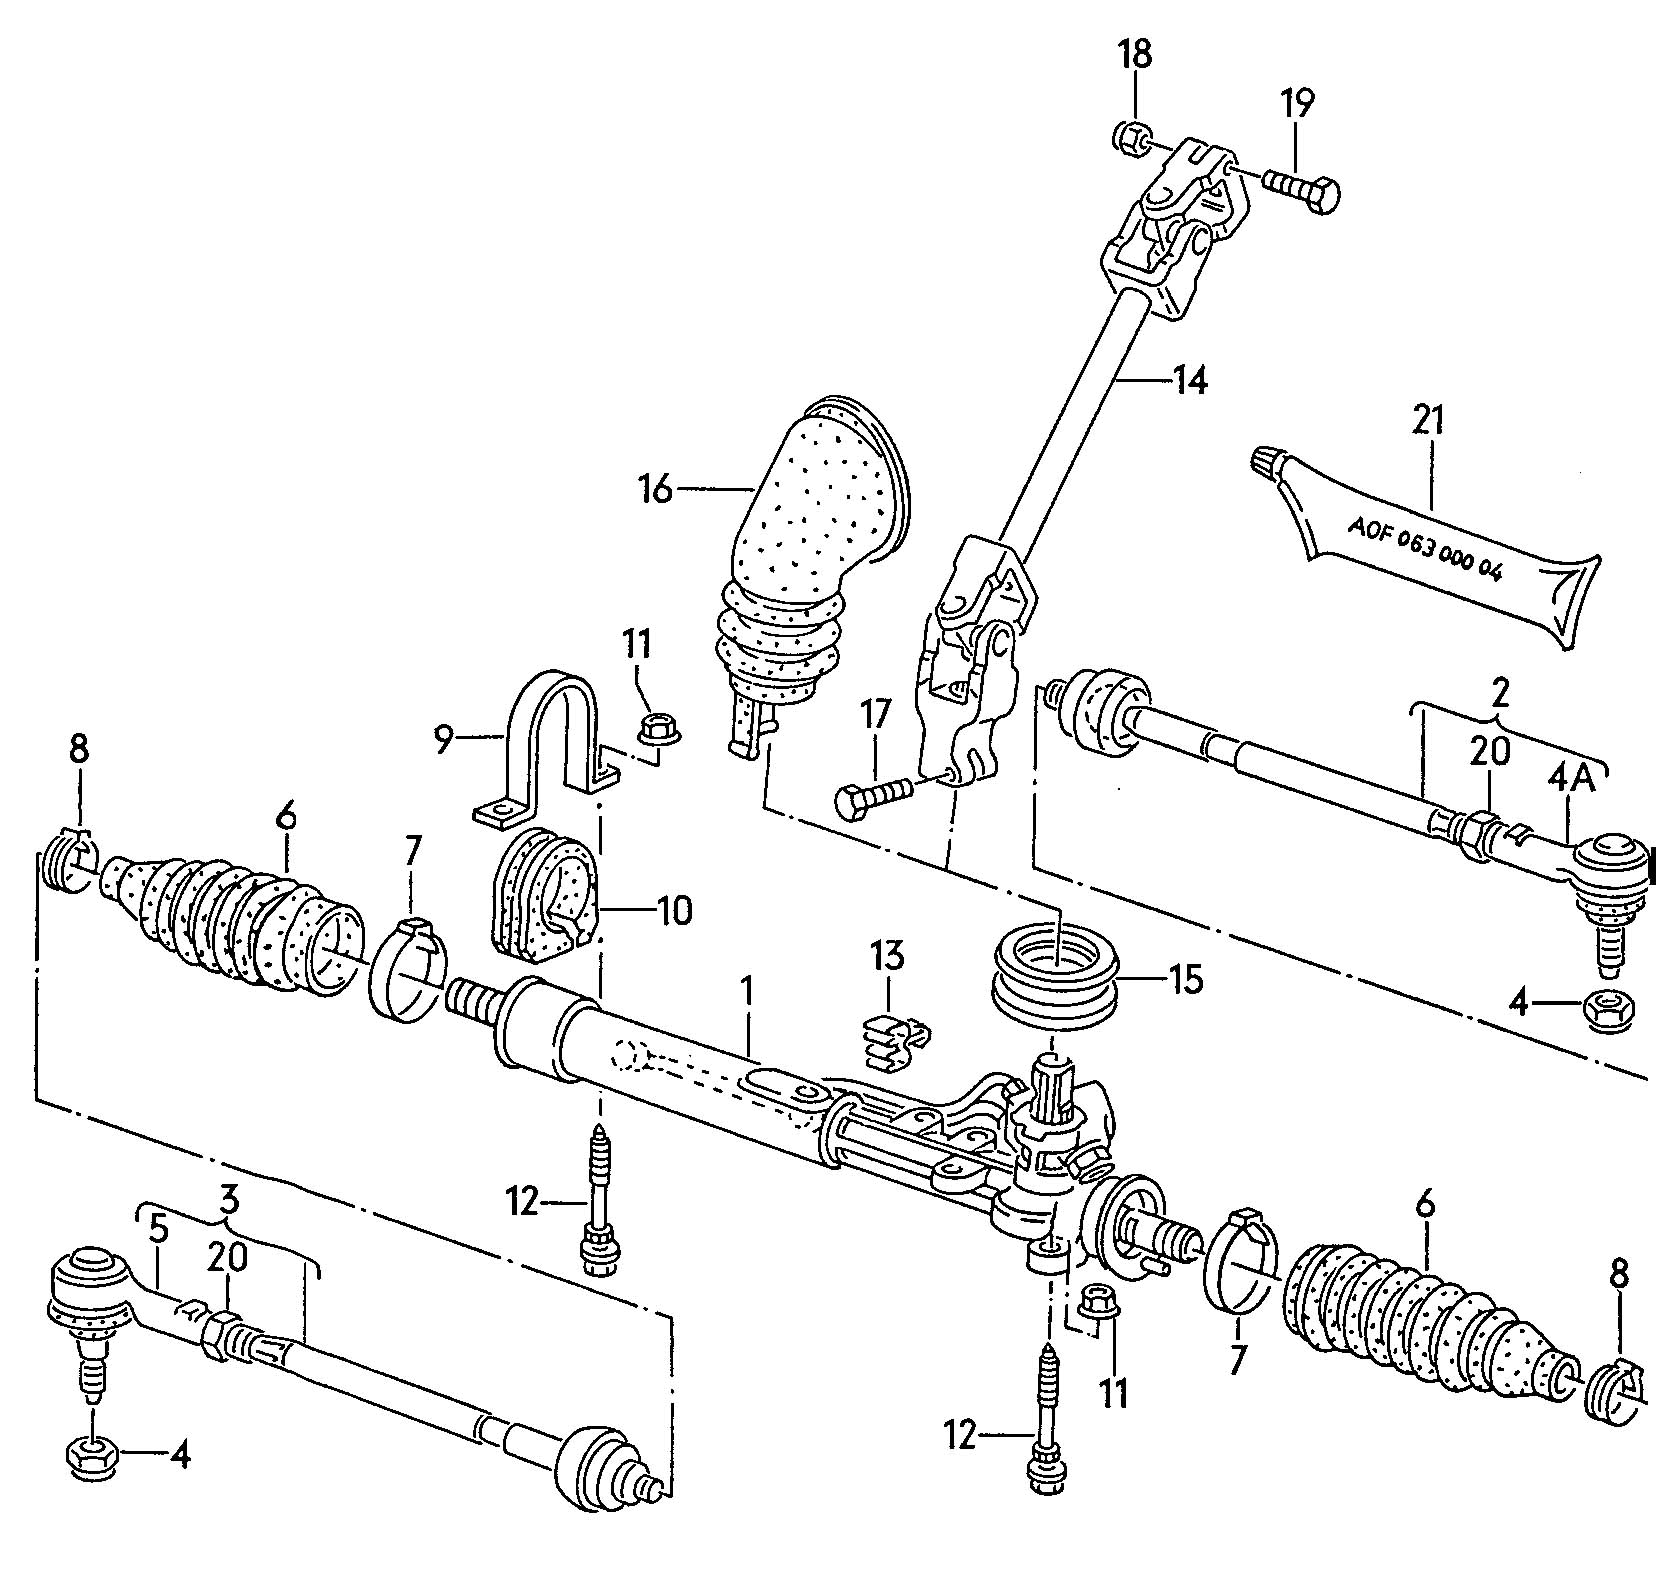 Volkswagen Vw Corrado Steering Gear Tie Rod Drive Shaft